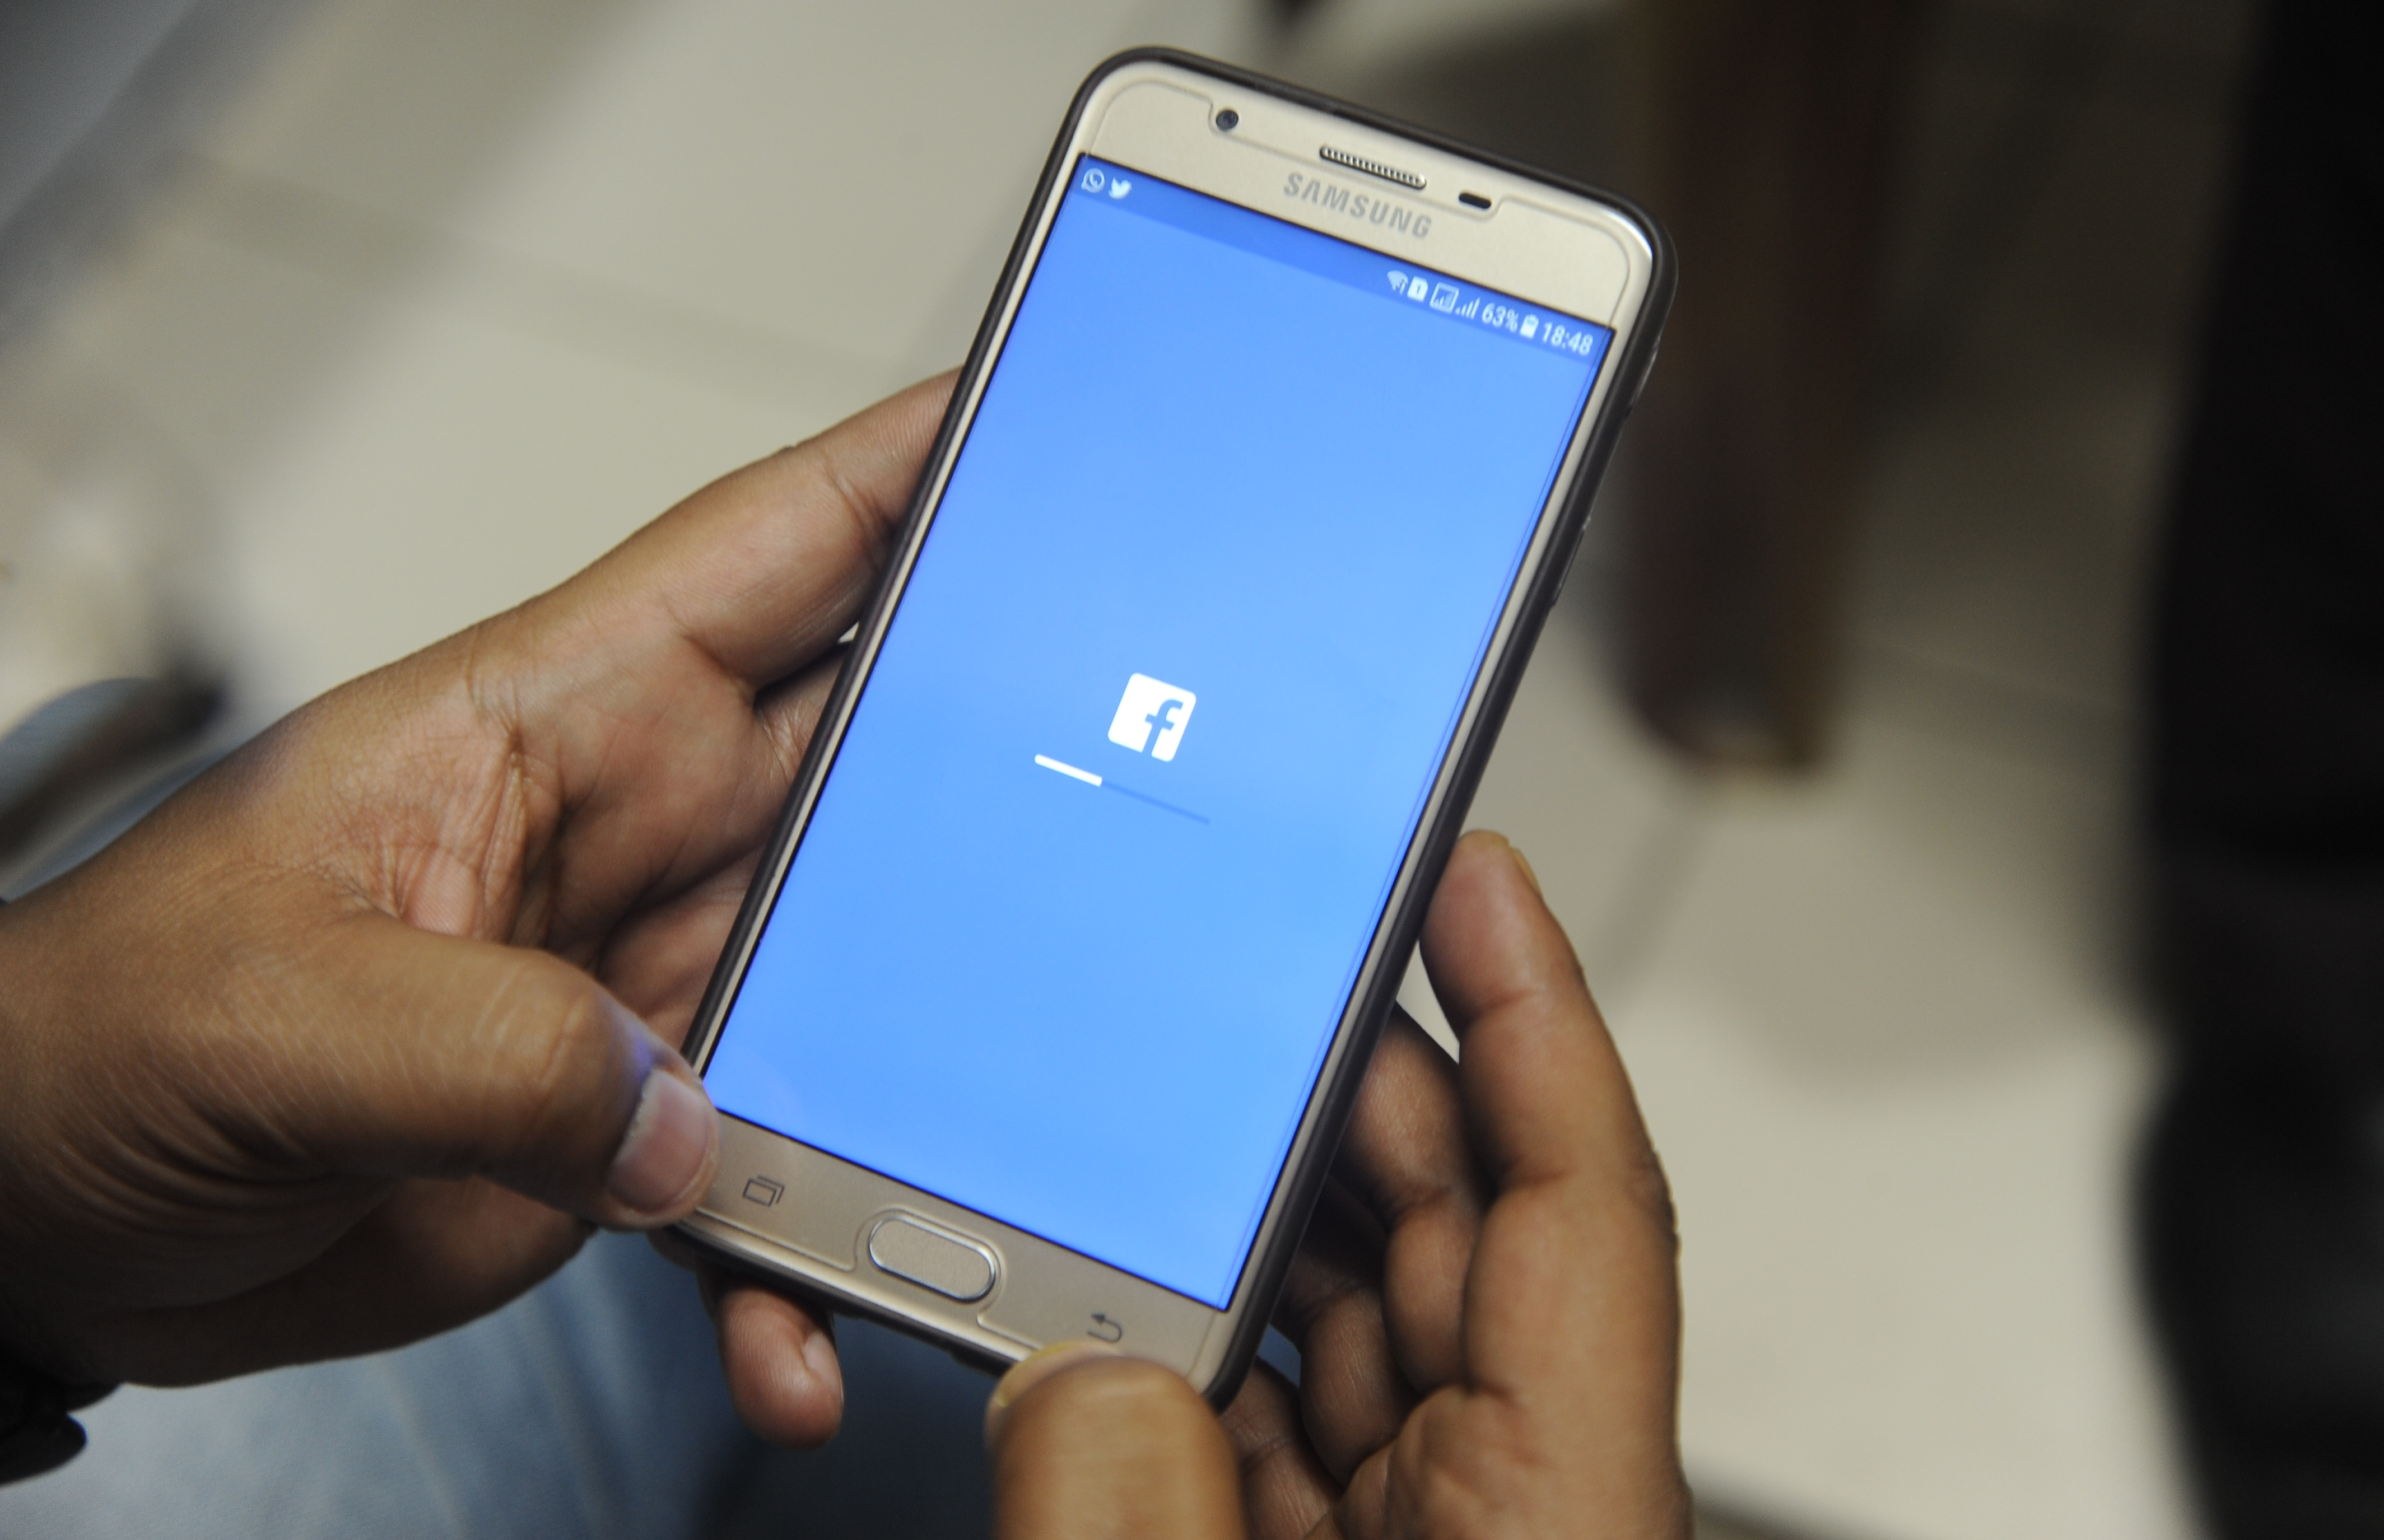 India's Election Commission has laid down guidelines for politicians and tech giants like Google, Facebook and Twitter.